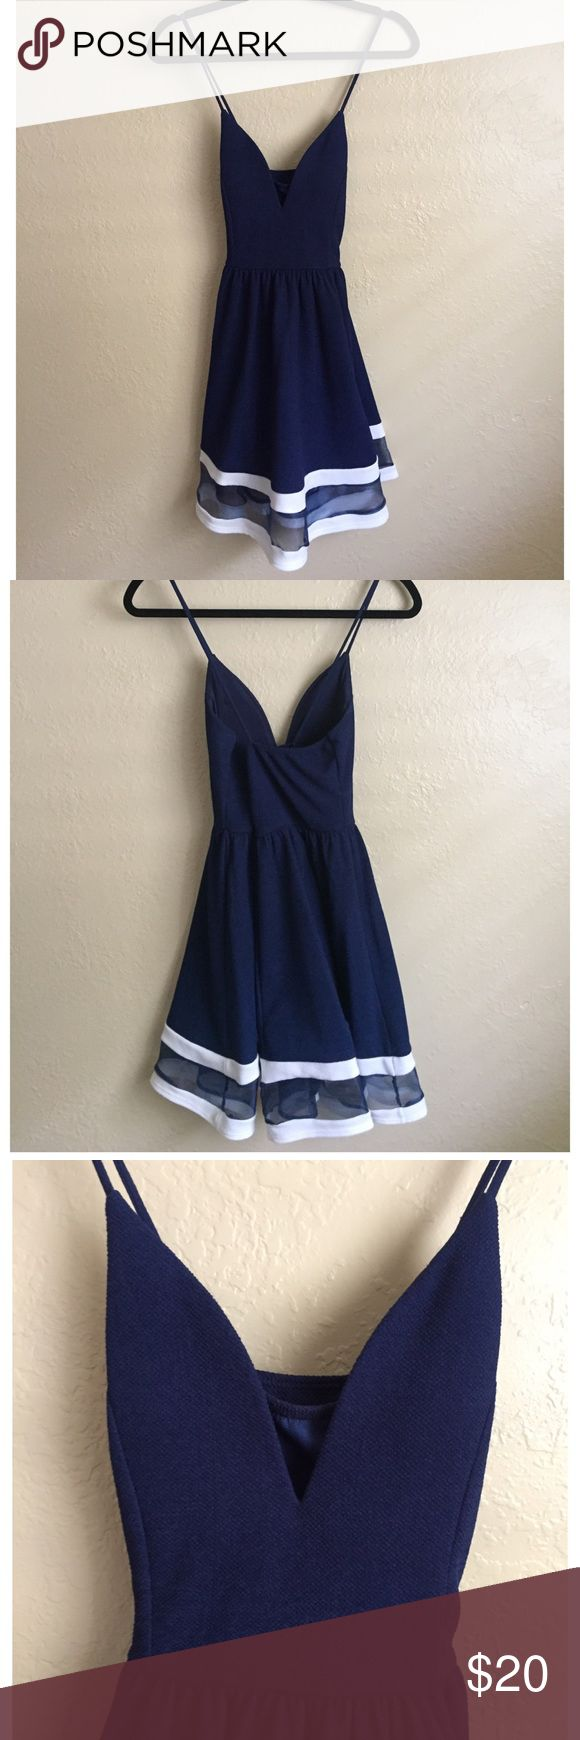 Blue dress with White Striped Hem Worn once and in excellent condition. Racerback straps. Dress has some stretch, very flattering skater skirt shape! True to size. For all other measurements please refer to brand size chart.   ✅ Reasonable offers considered. Please do not ask 'lowest' via comments  ✅ Bundle Discount  🚫 Cannot model item  🚫 No trades  🚫 Low ball offers will be declined a'gaci Dresses